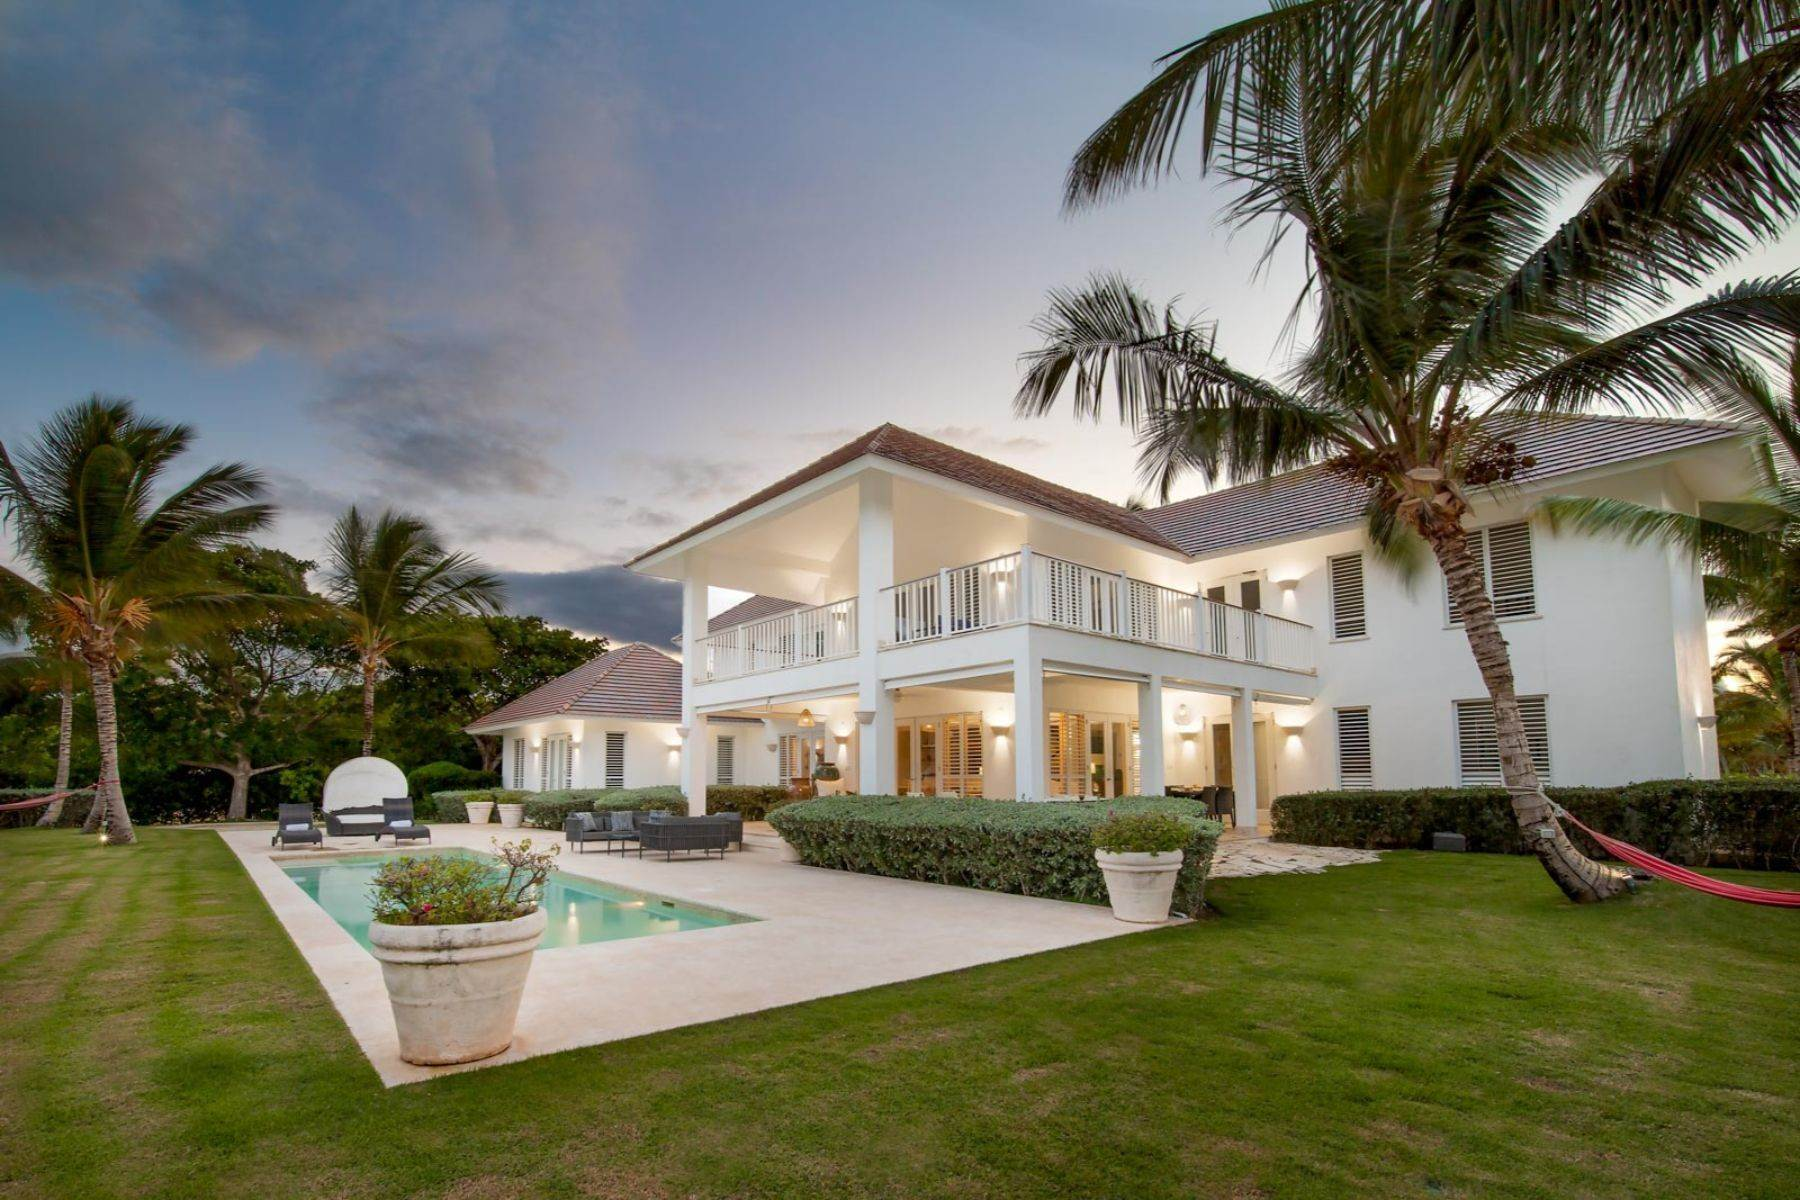 Single Family Homes für Verkauf beim Tortuga # H9 - Villa with golf course and the Caribbean Sea view close to the be Tortuga # H-9, Puntacana Resort & Club Punta Cana, La Altagracia 23000 Dominikanische Republik